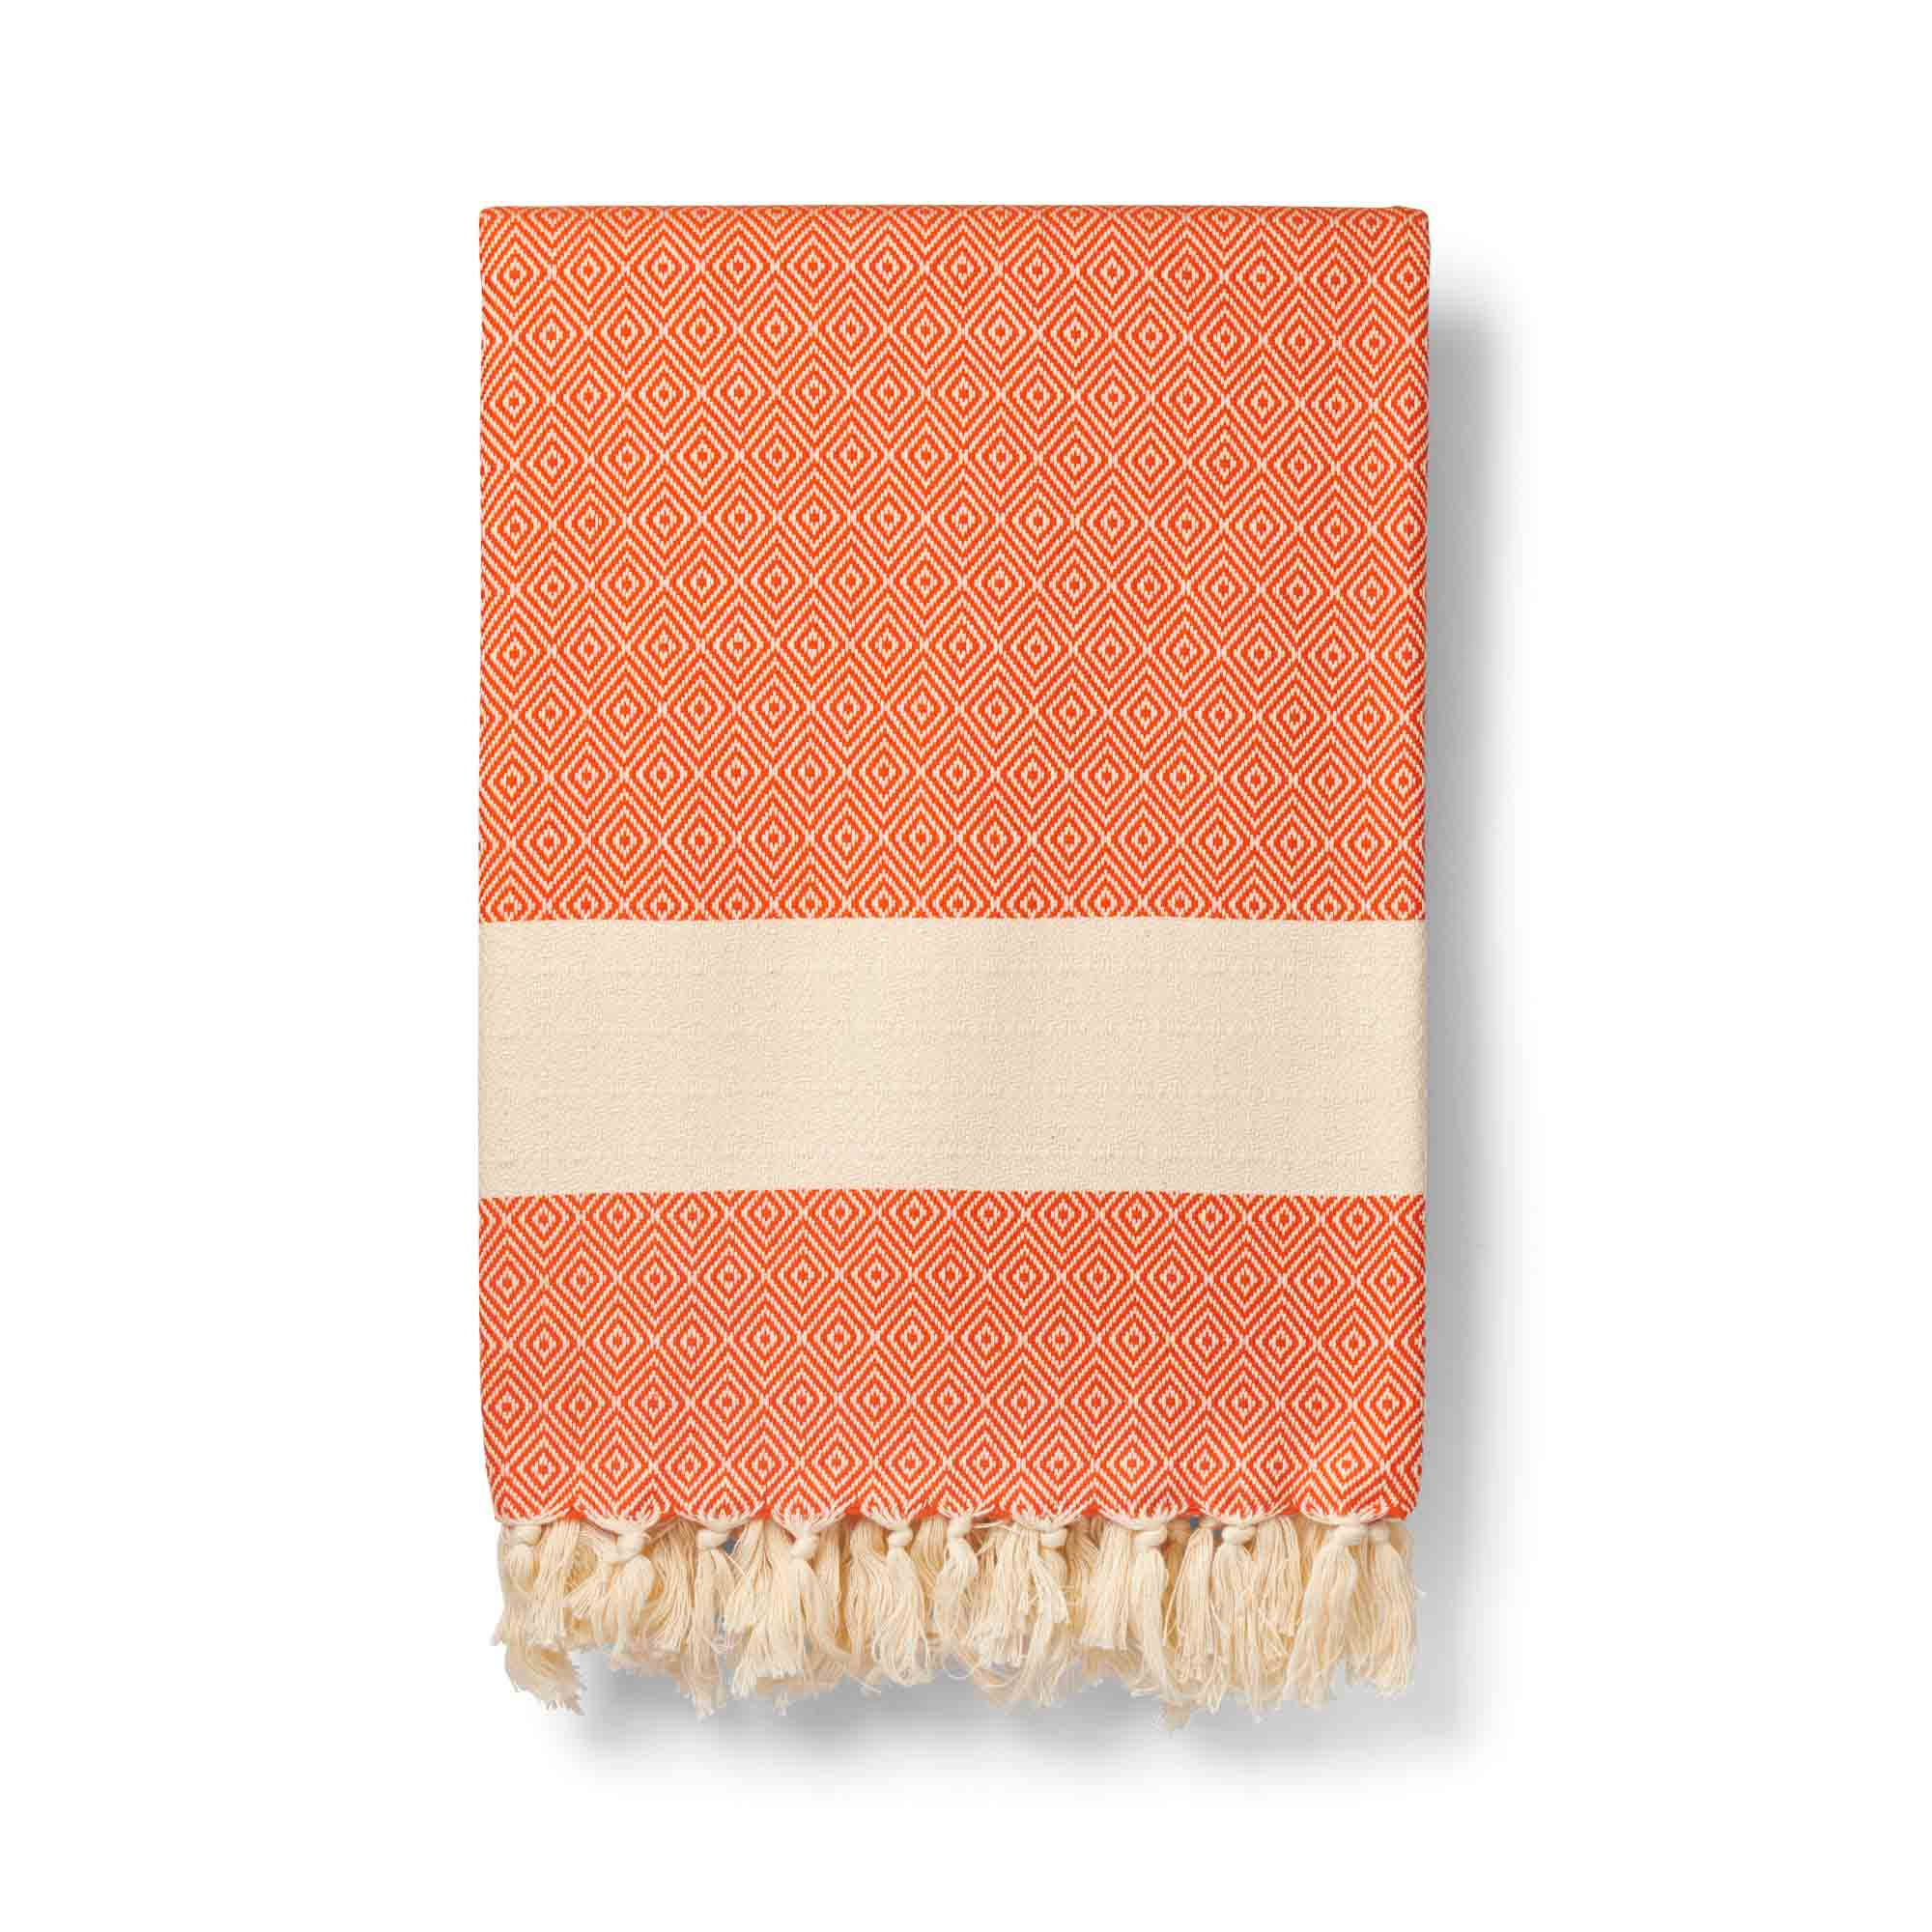 Orange organic cotton blanket